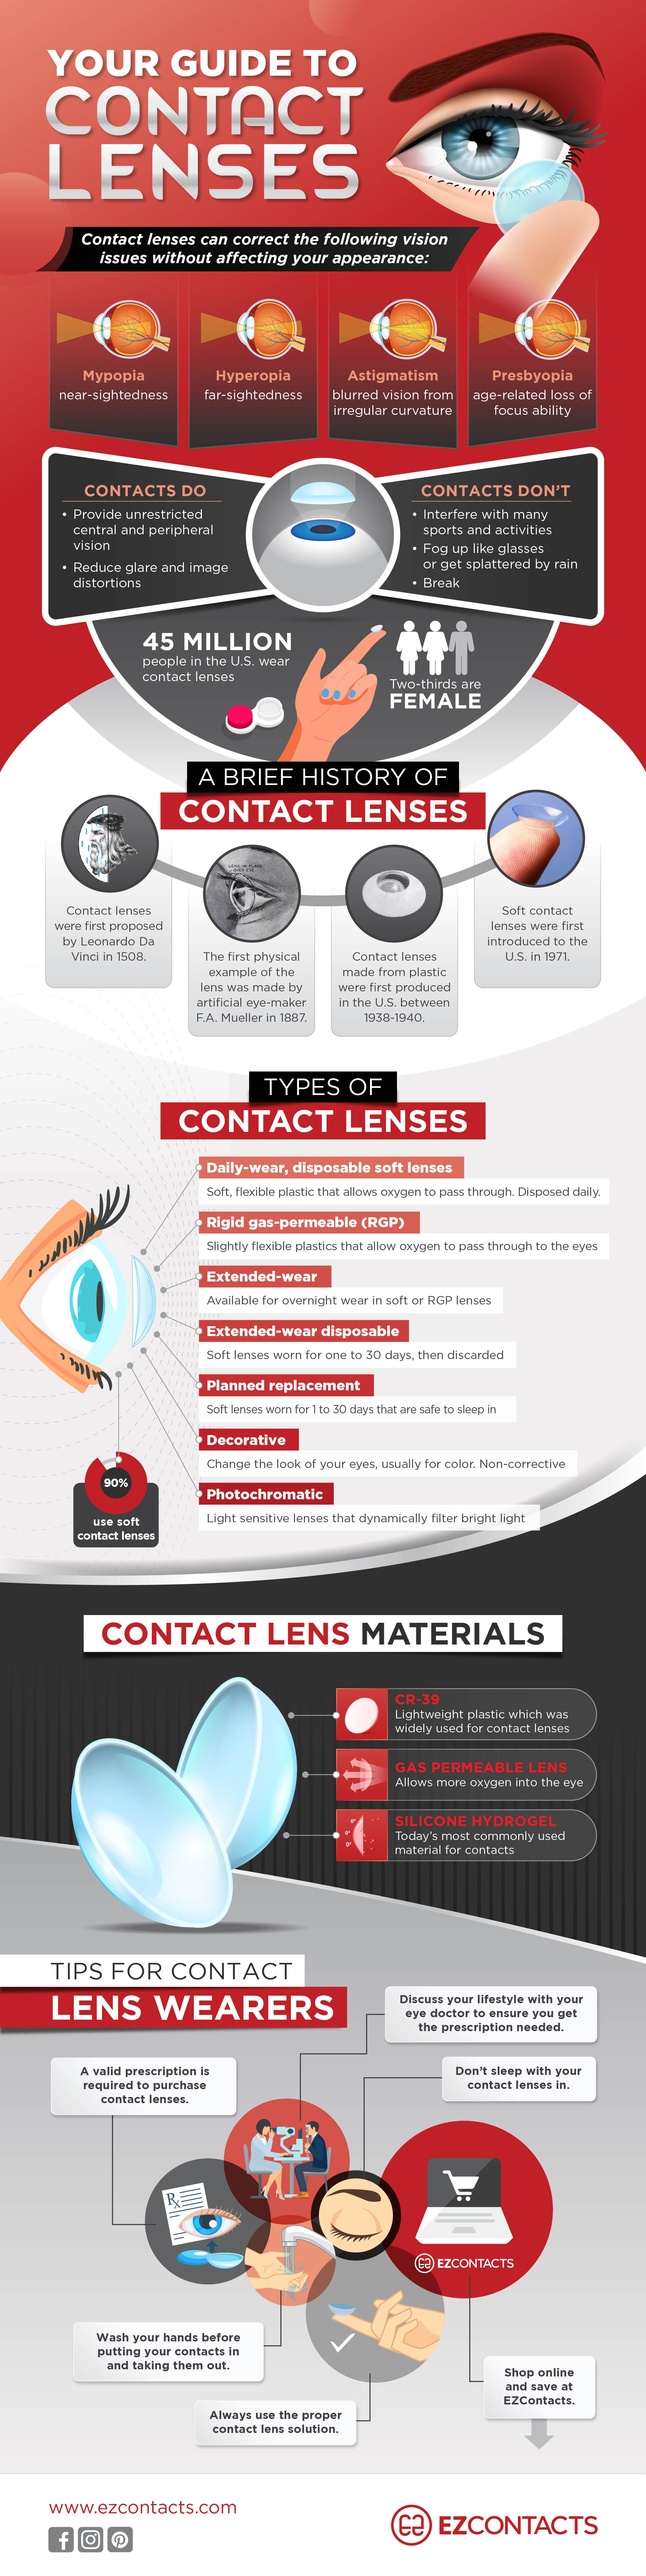 Your Guide to Contact Lenses